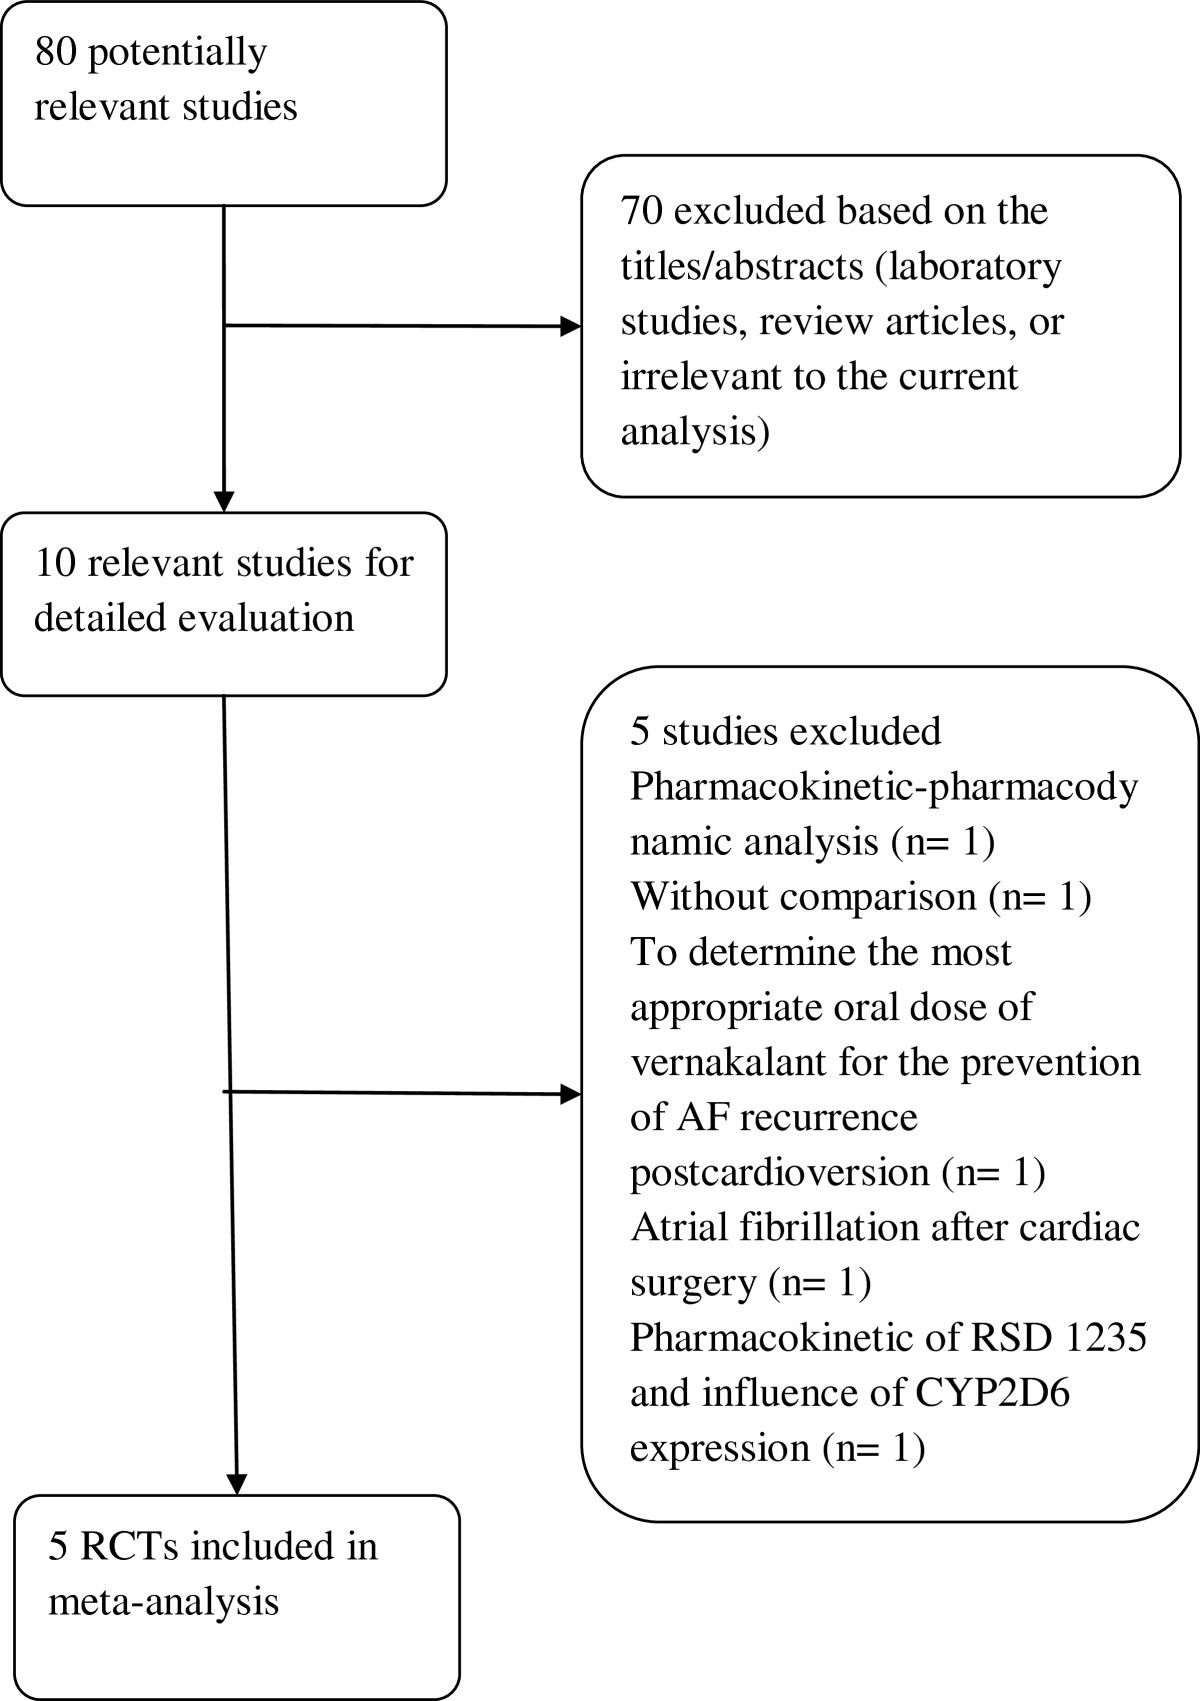 http://static-content.springer.com/image/art%3A10.1186%2F1756-0500-6-94/MediaObjects/13104_2013_Article_2123_Fig1_HTML.jpg